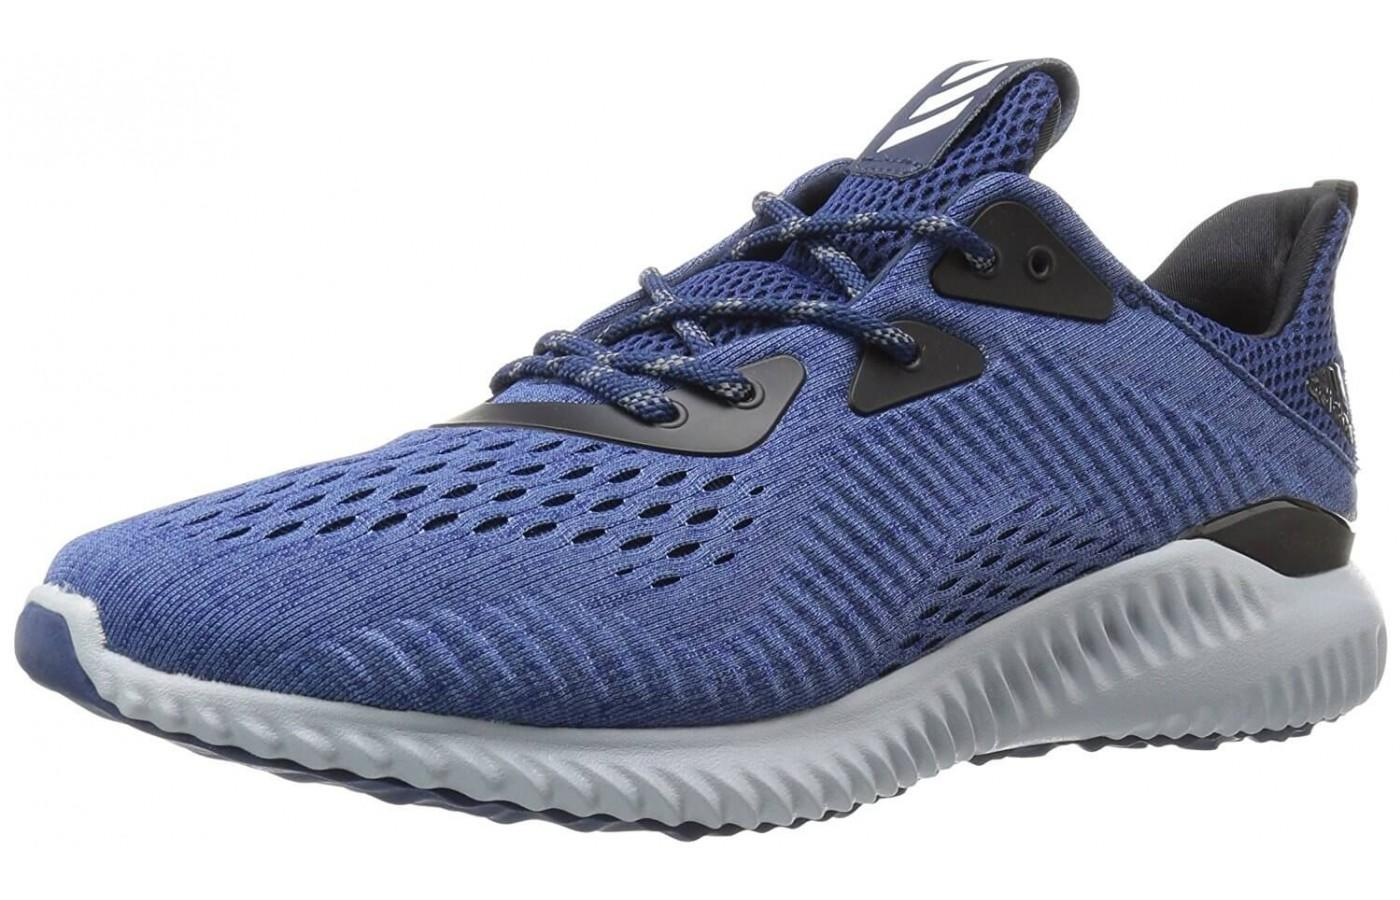 The Adidas Alphabounce EM features Bounce cushioning